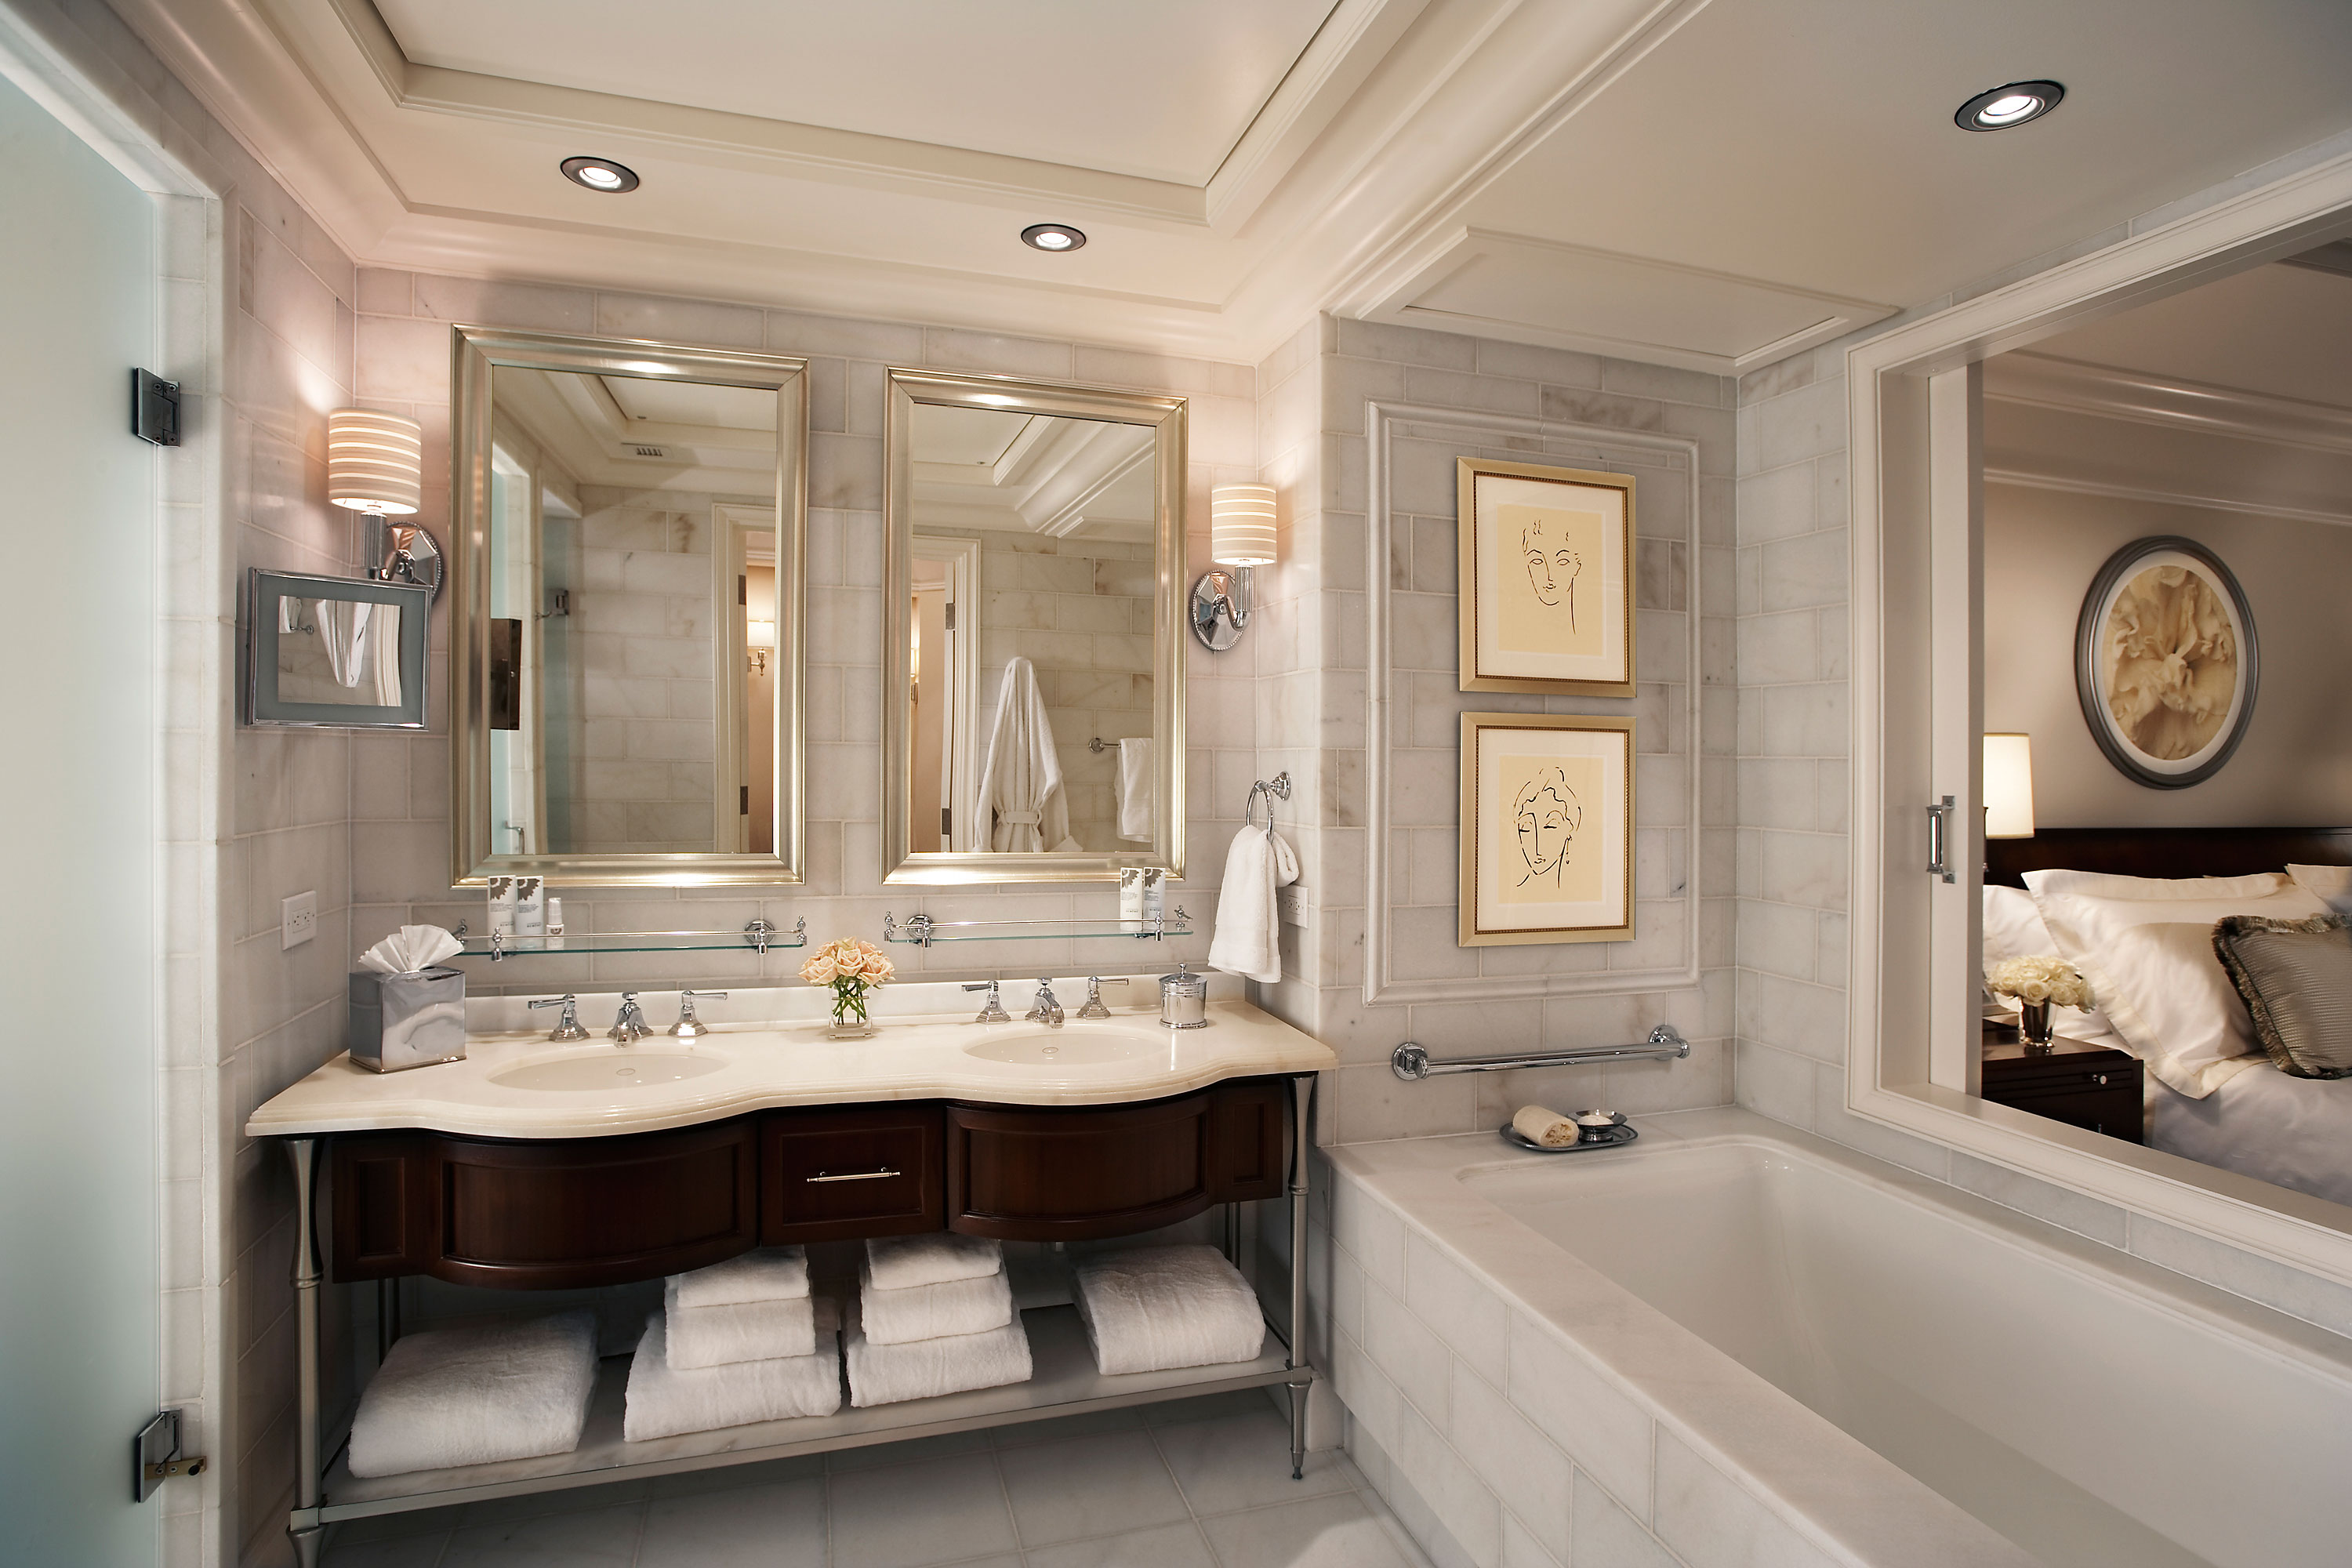 Marble Bathroom Ideas To Create A Luxurious Scheme: Edge Treatments And Profiles